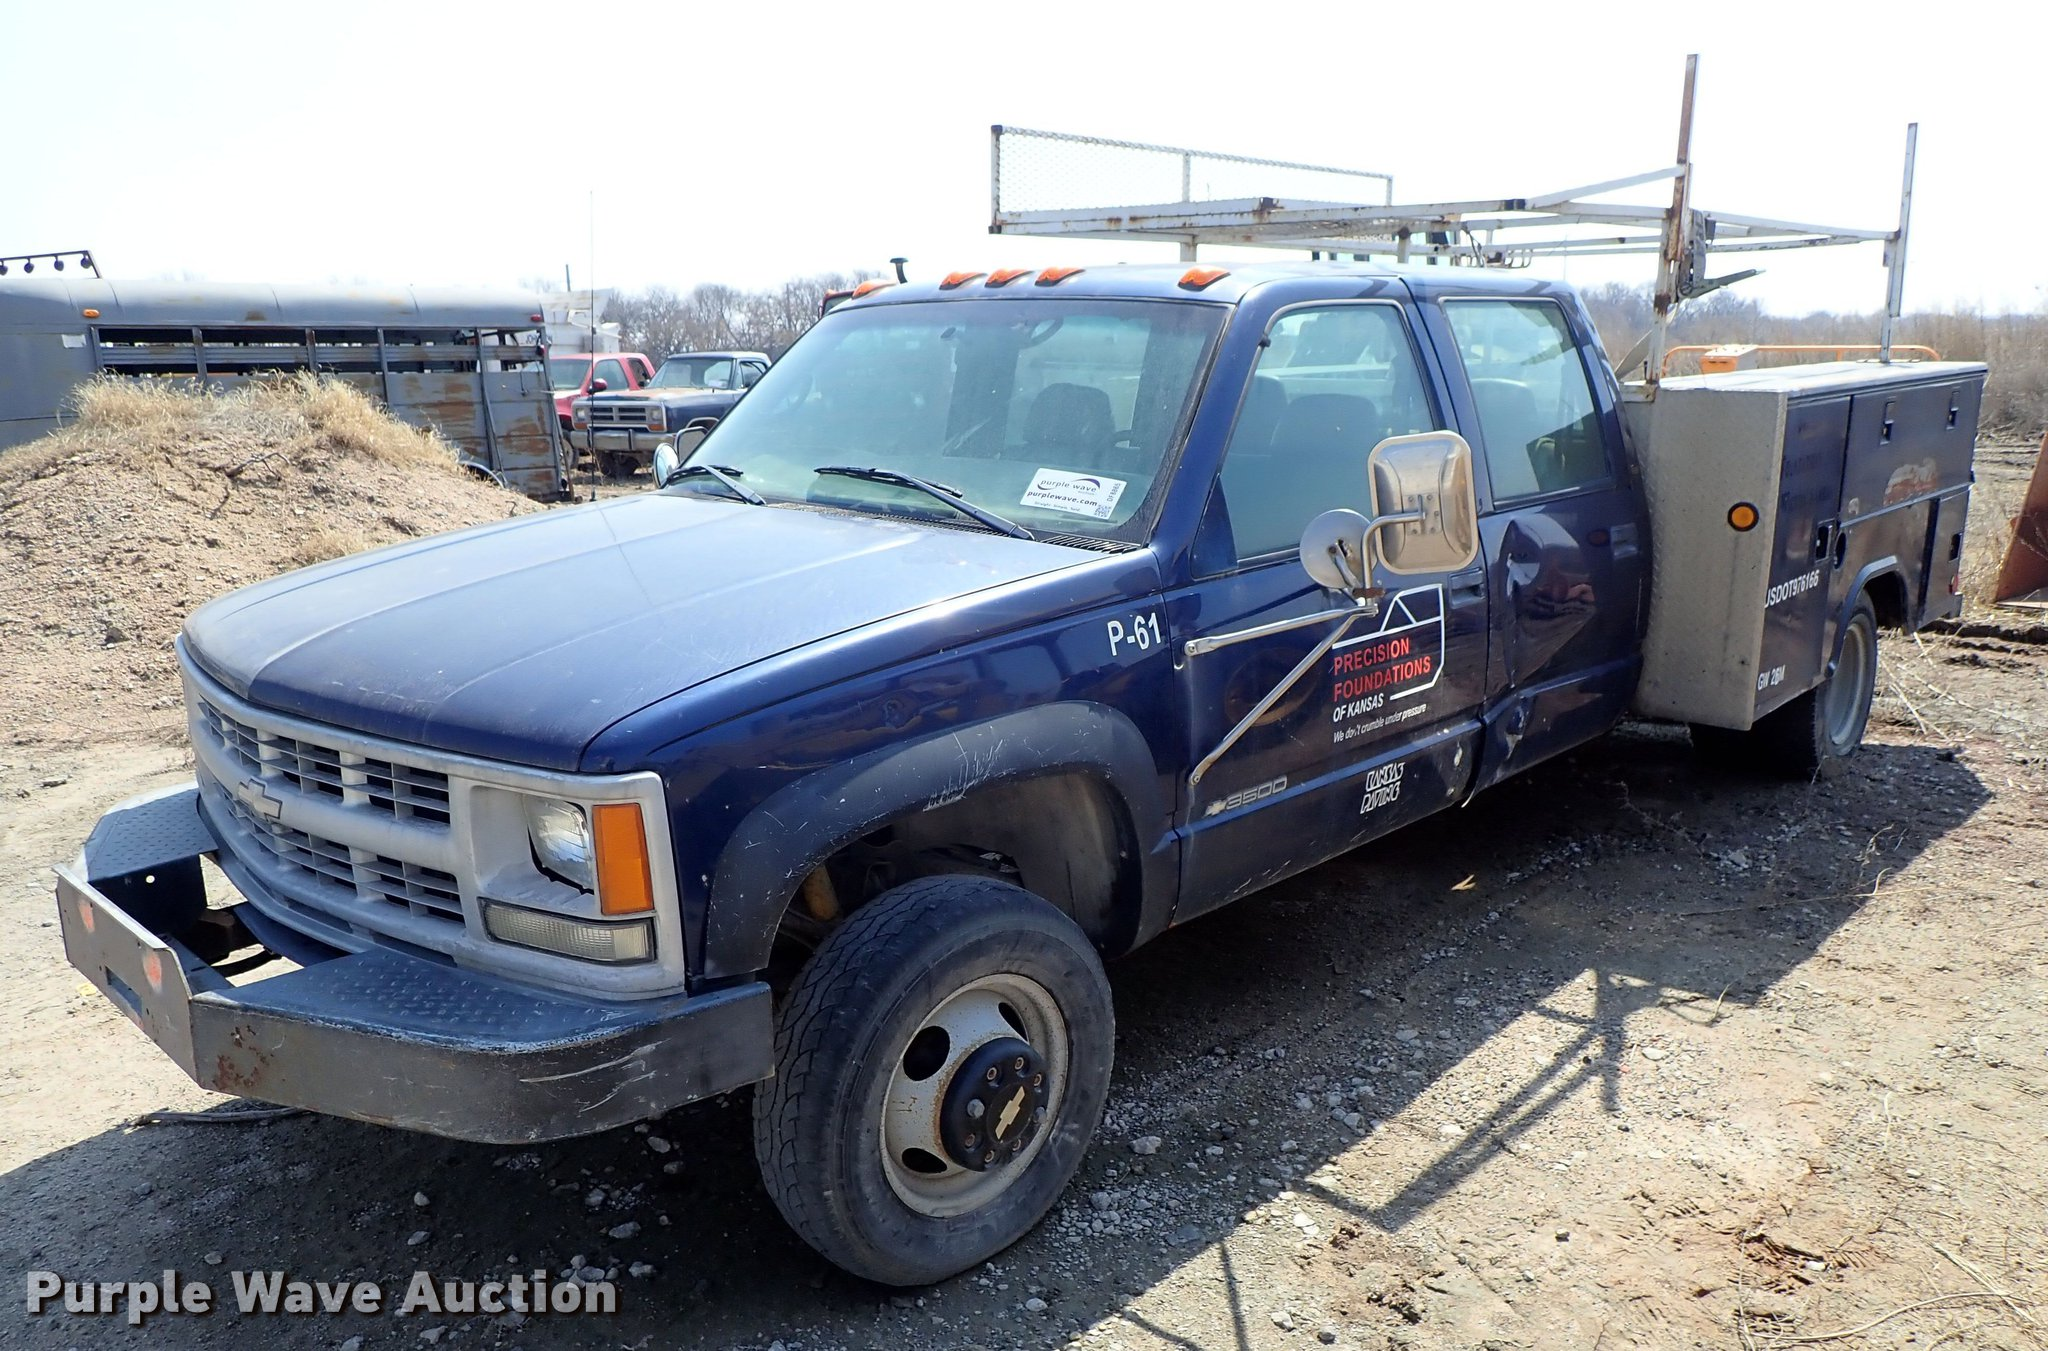 1998 Chevrolet K3500 Crew Cab utility bed pickup truck | Ite